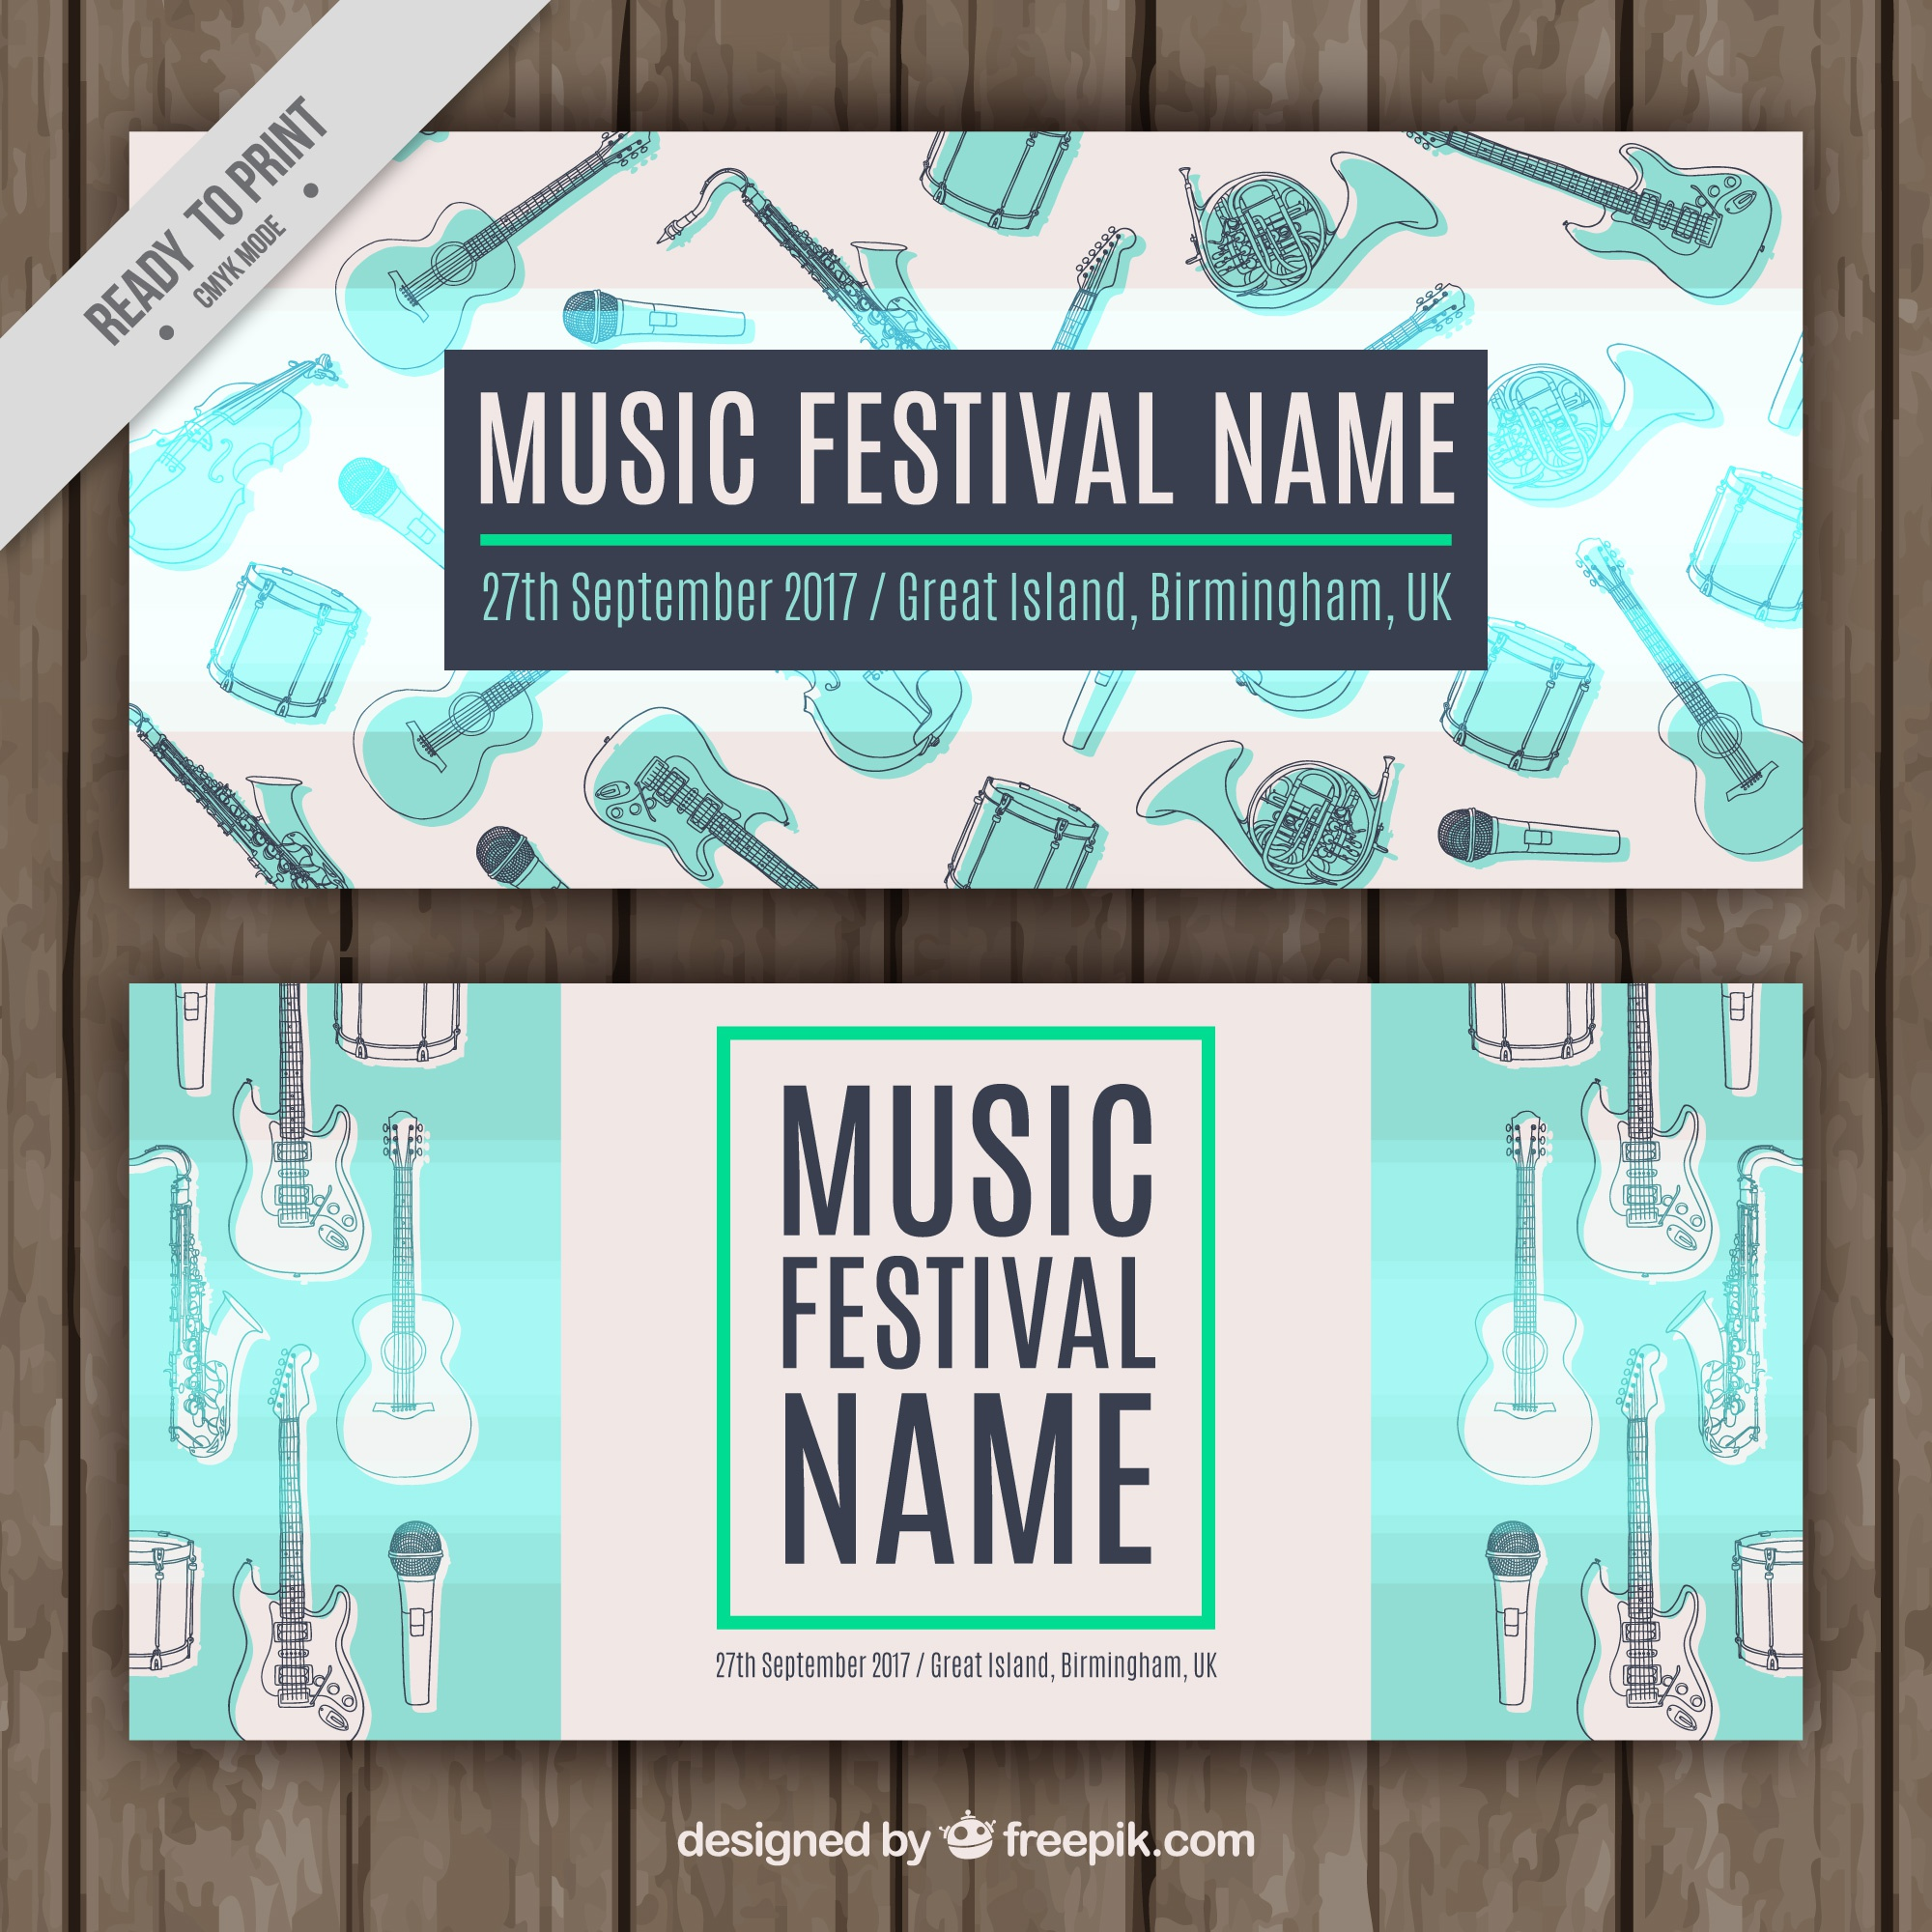 Music festival banners with instrument sketches